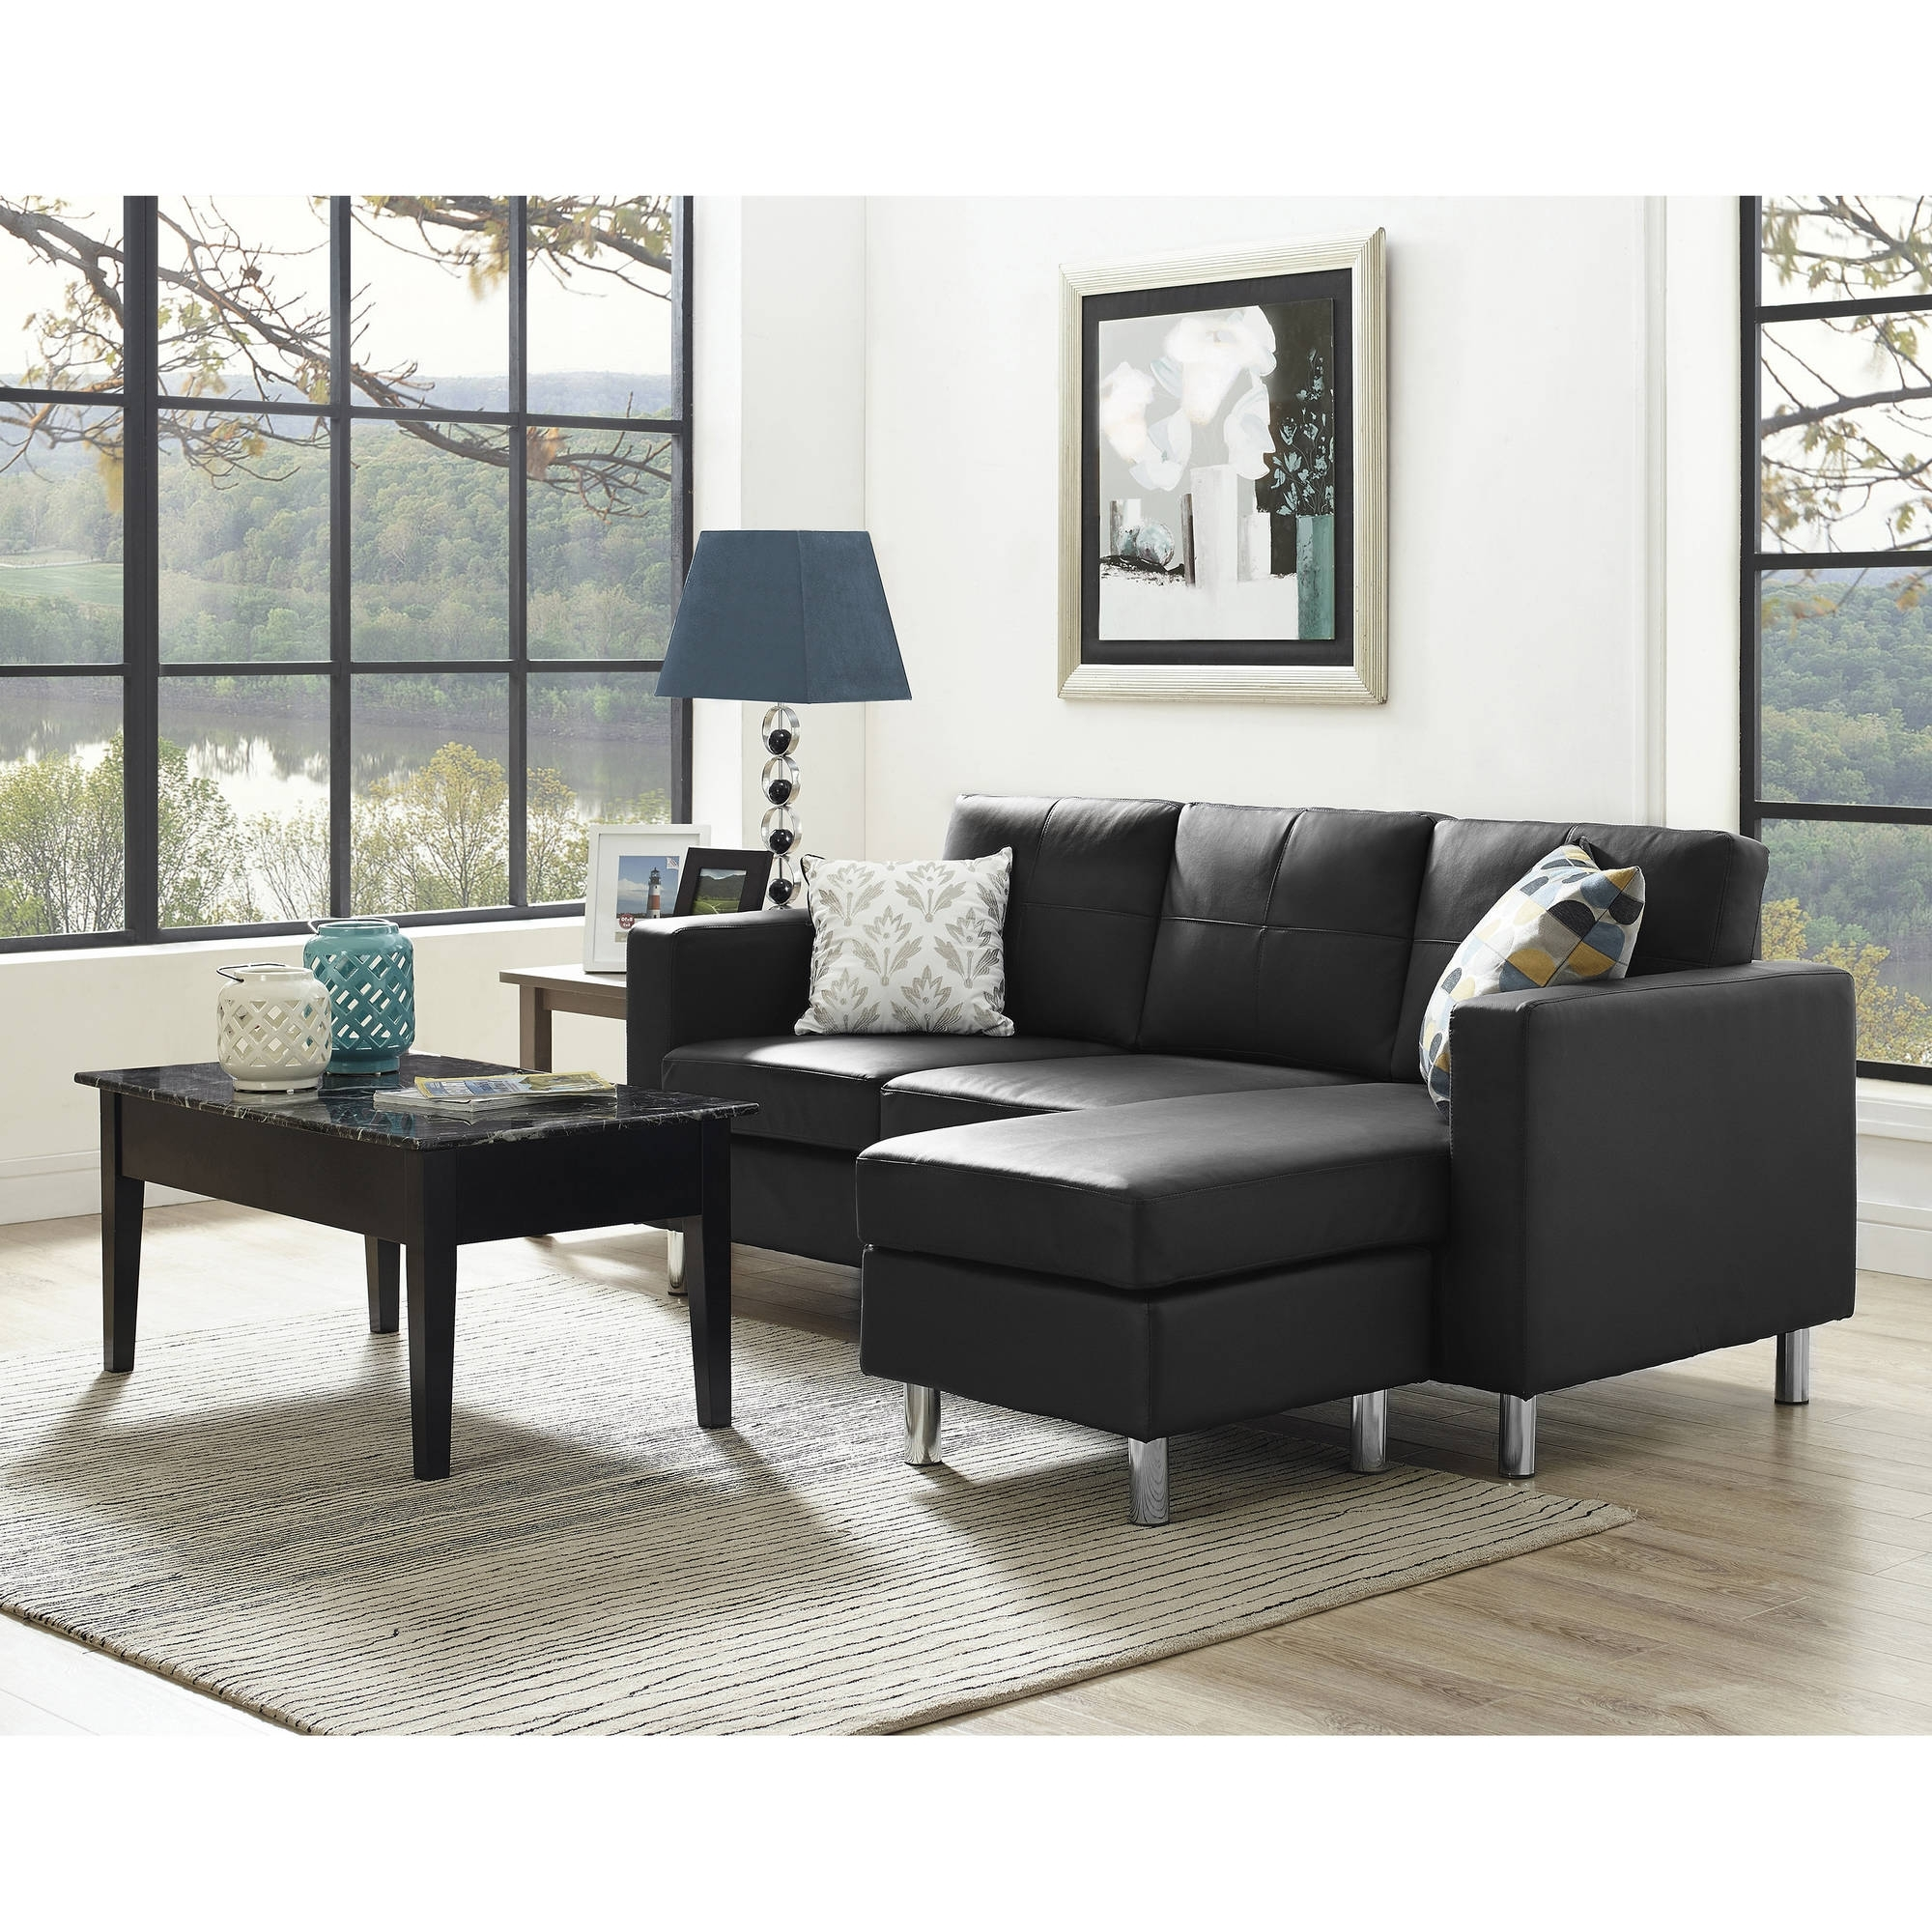 Dorel Living Small Spaces Configurable Sectional Sofa, Multiple Regarding Most Recent Sectional Sofas For Small Places (View 3 of 15)